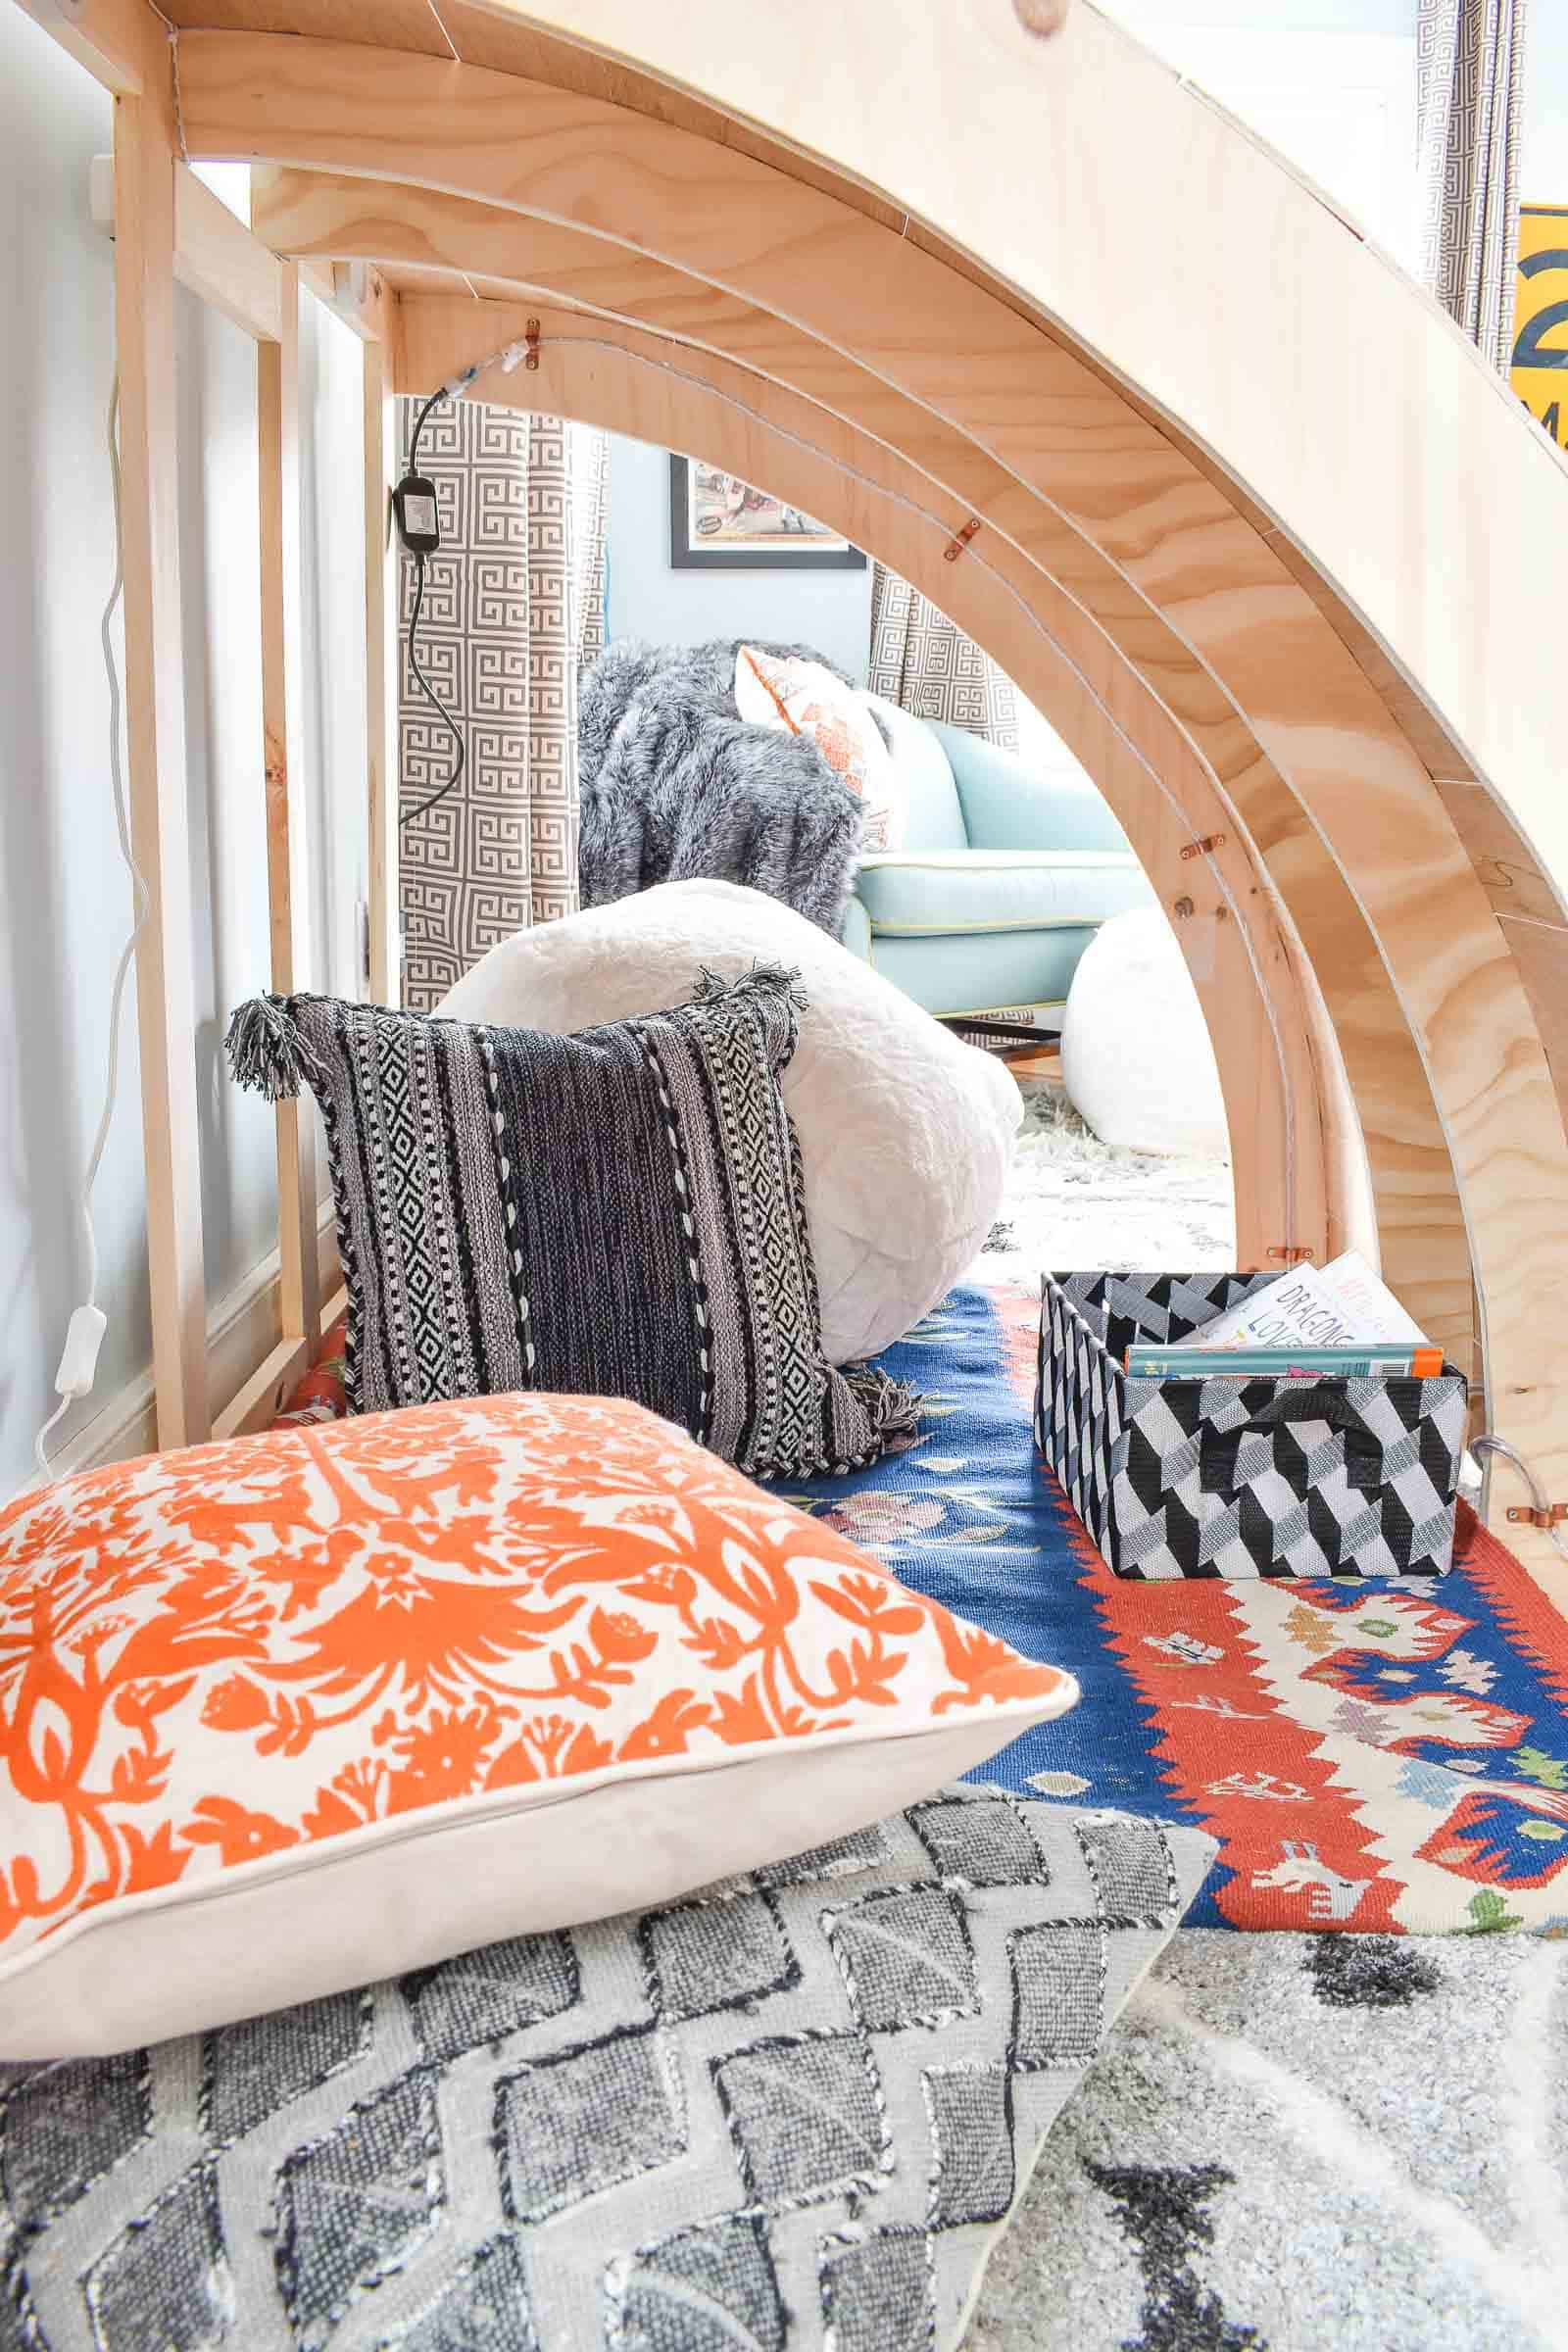 reading nook with cozy blankets and storage